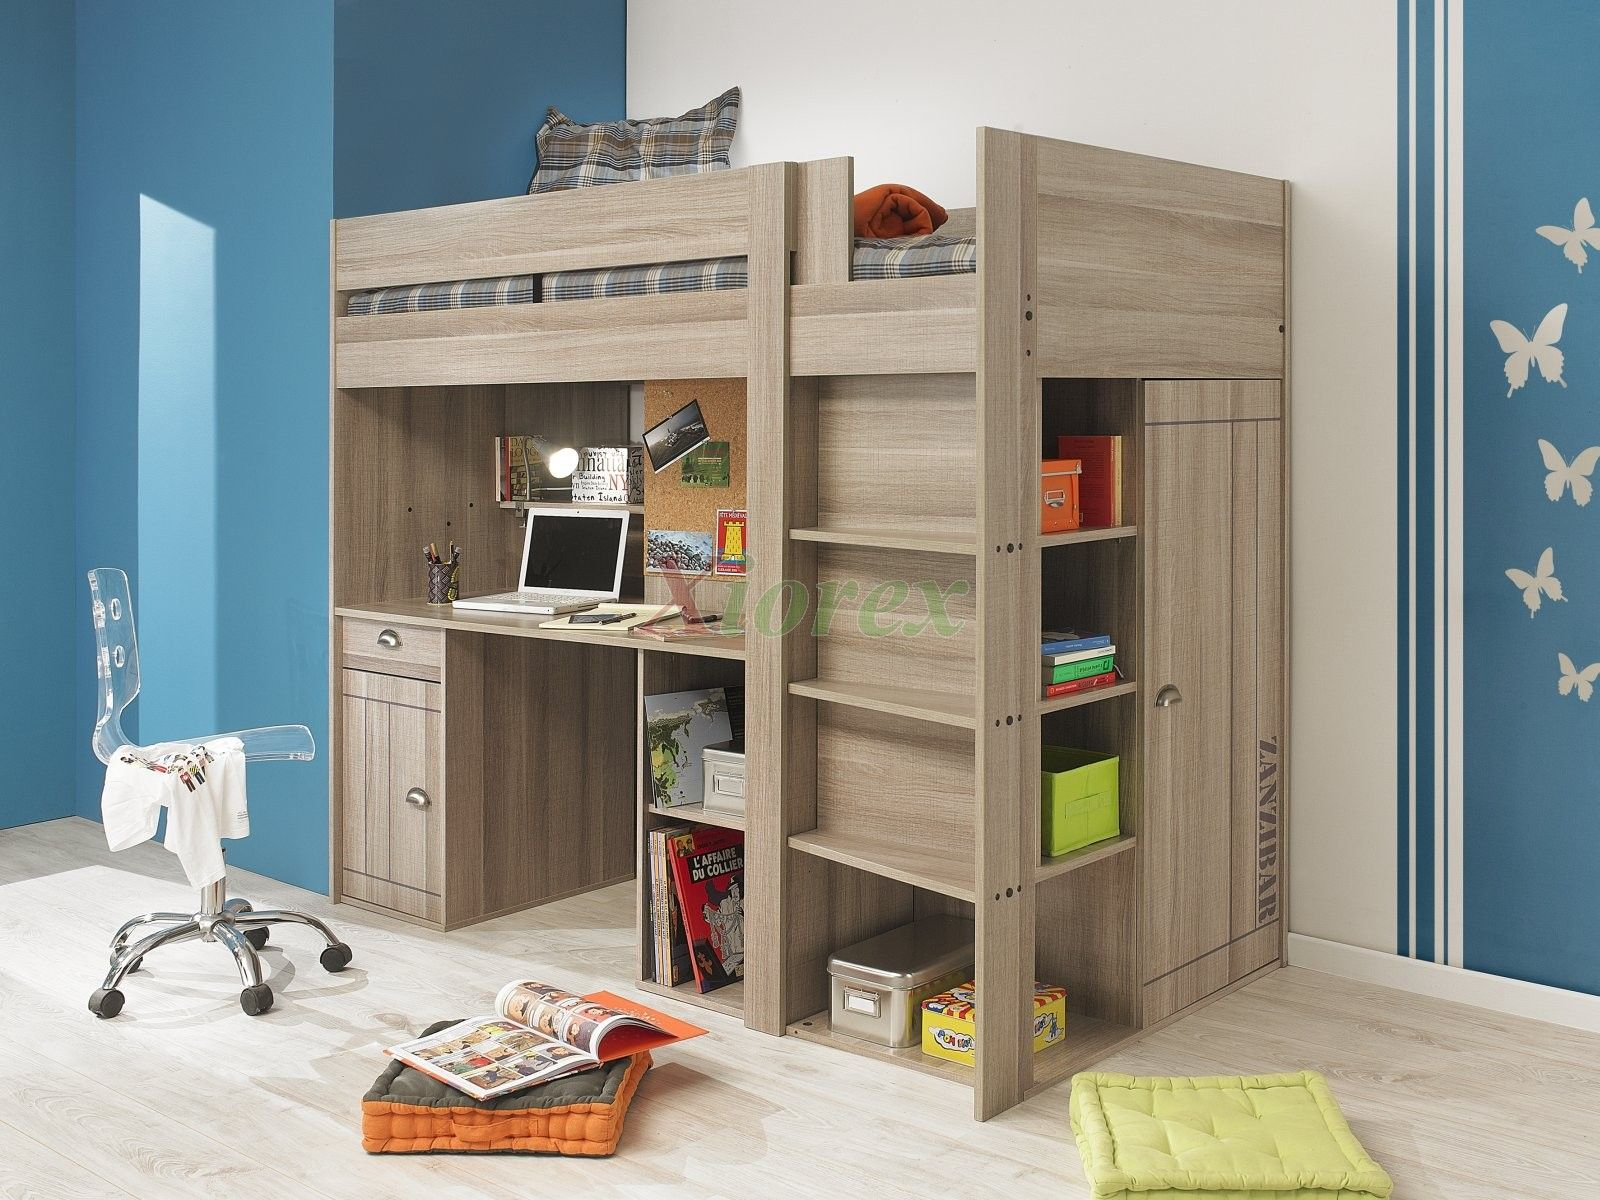 Bunk bed with desk for teenagers - Gami Largo Loft Beds For Teens Canada With Desk Closet